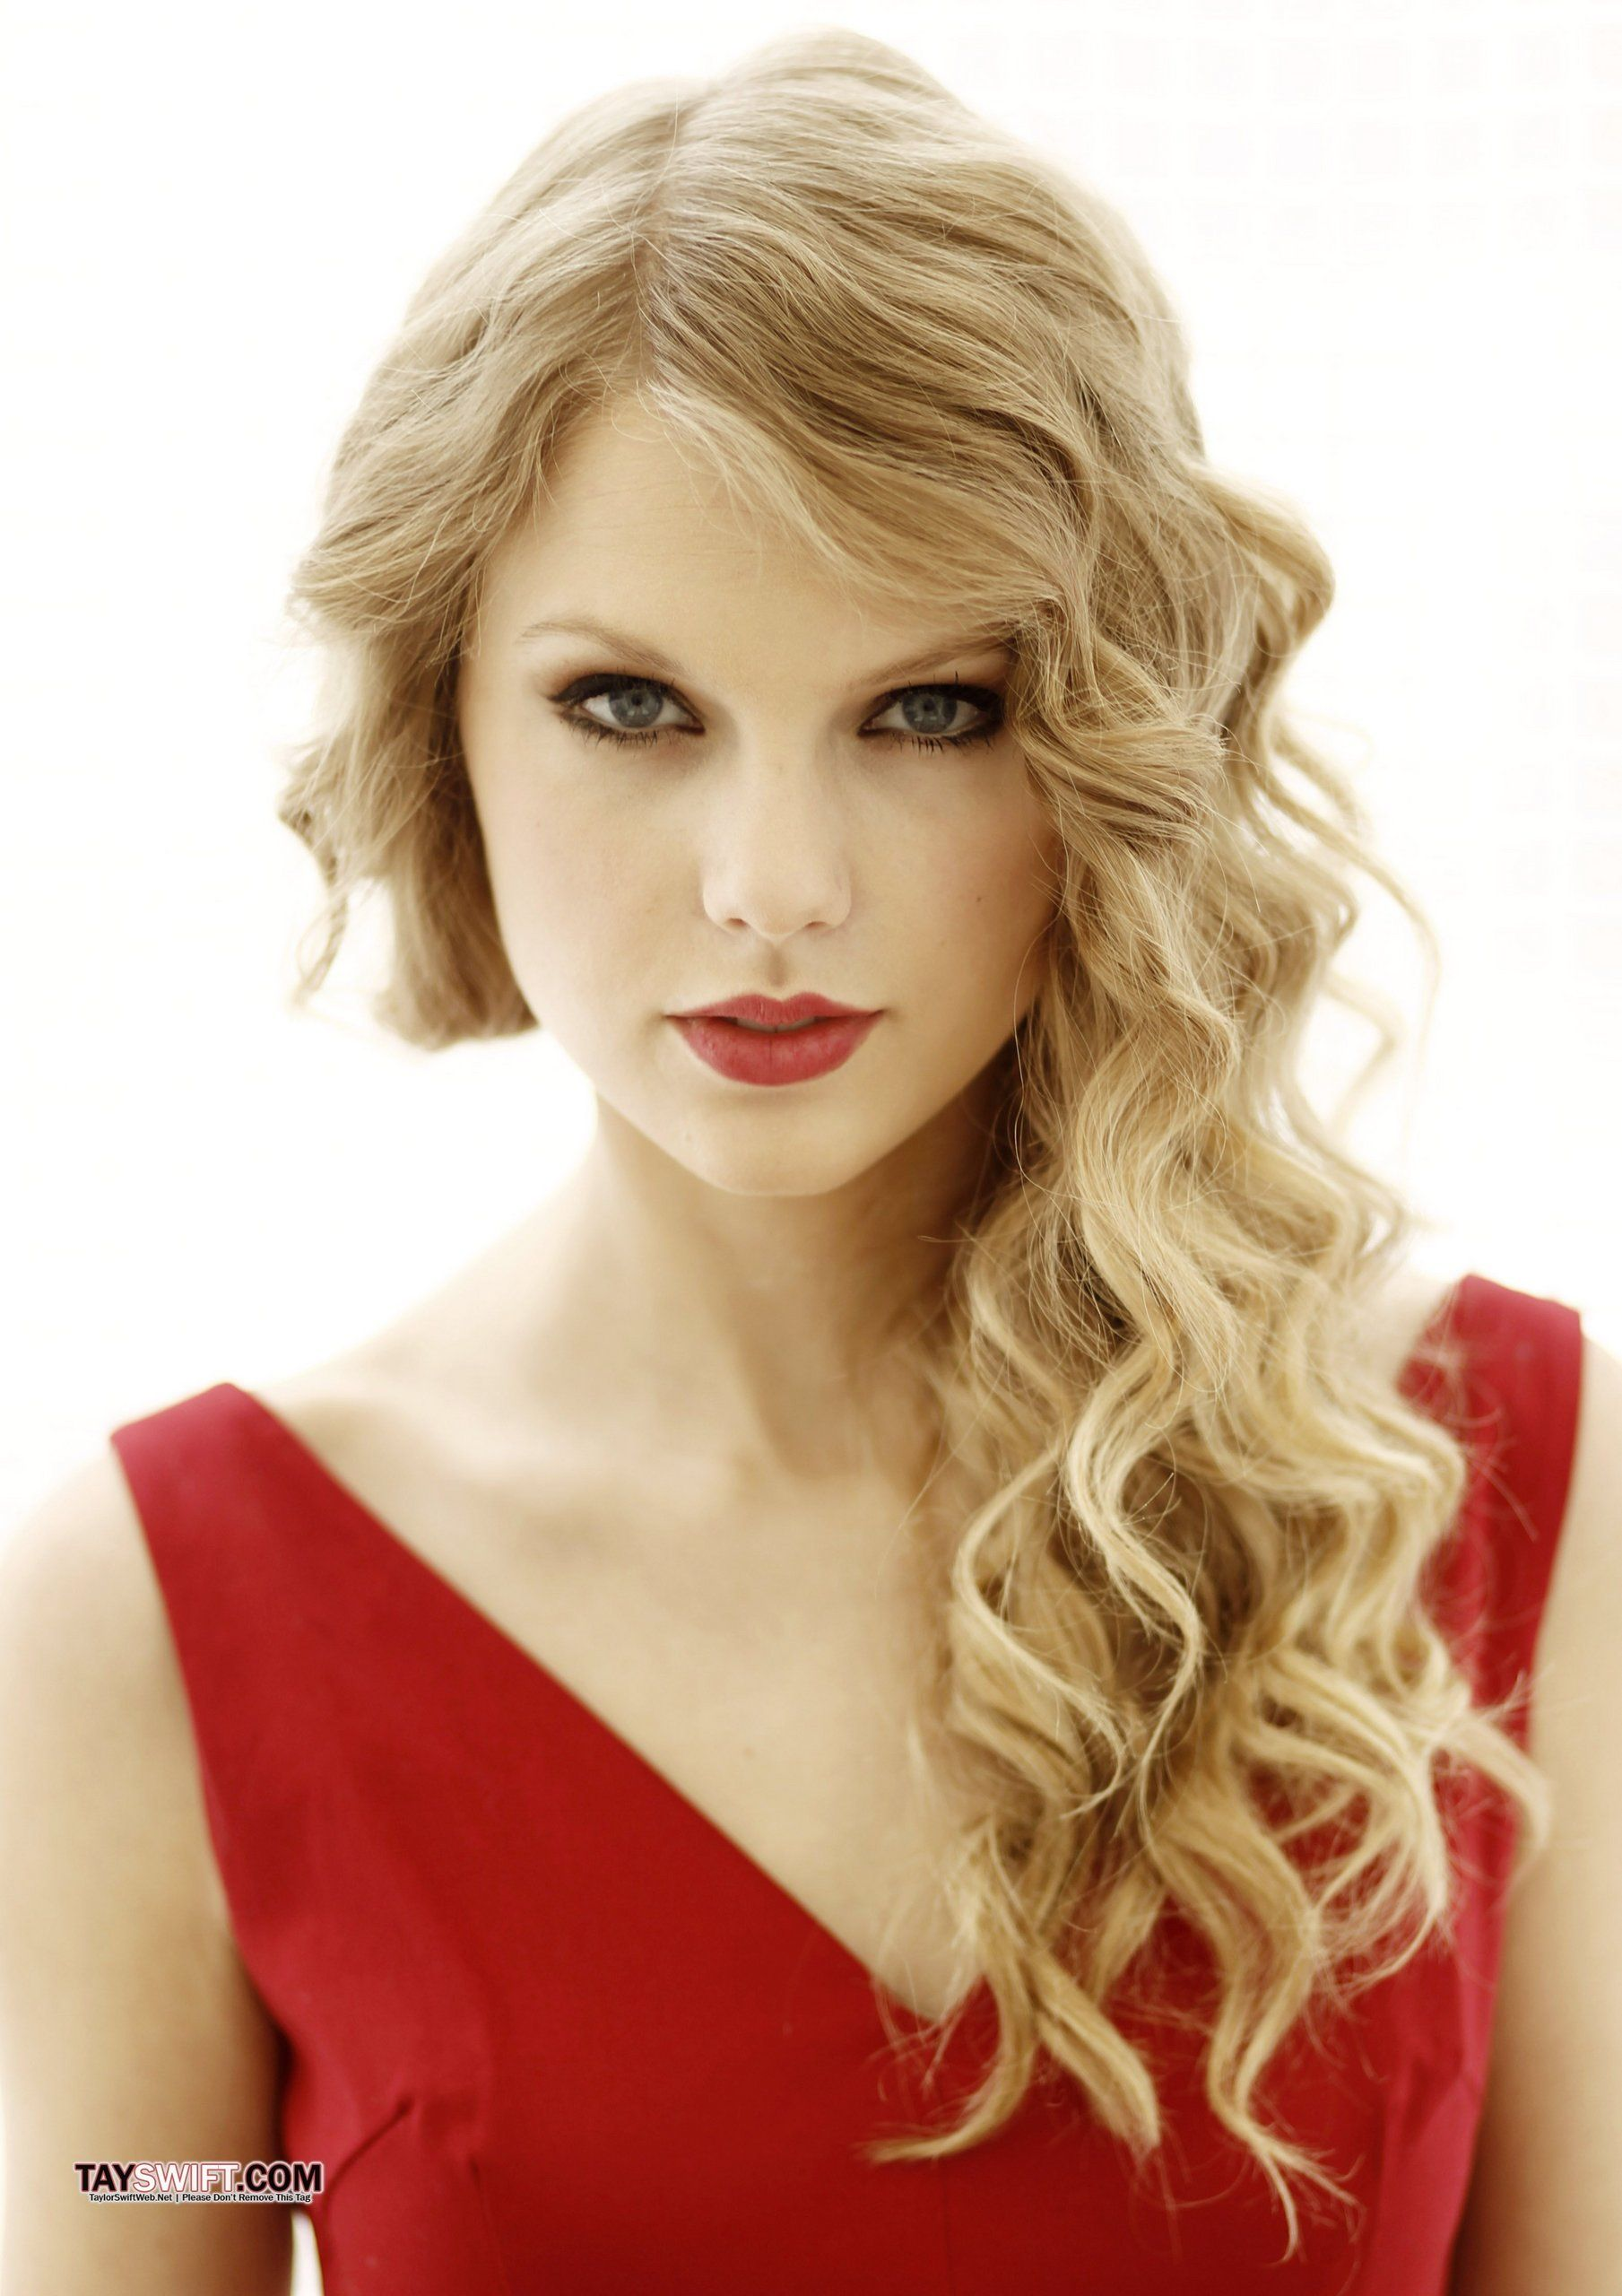 Hairstyle Taylor Swift Hair Taylor Swift Photoshoot Long Hair Styles